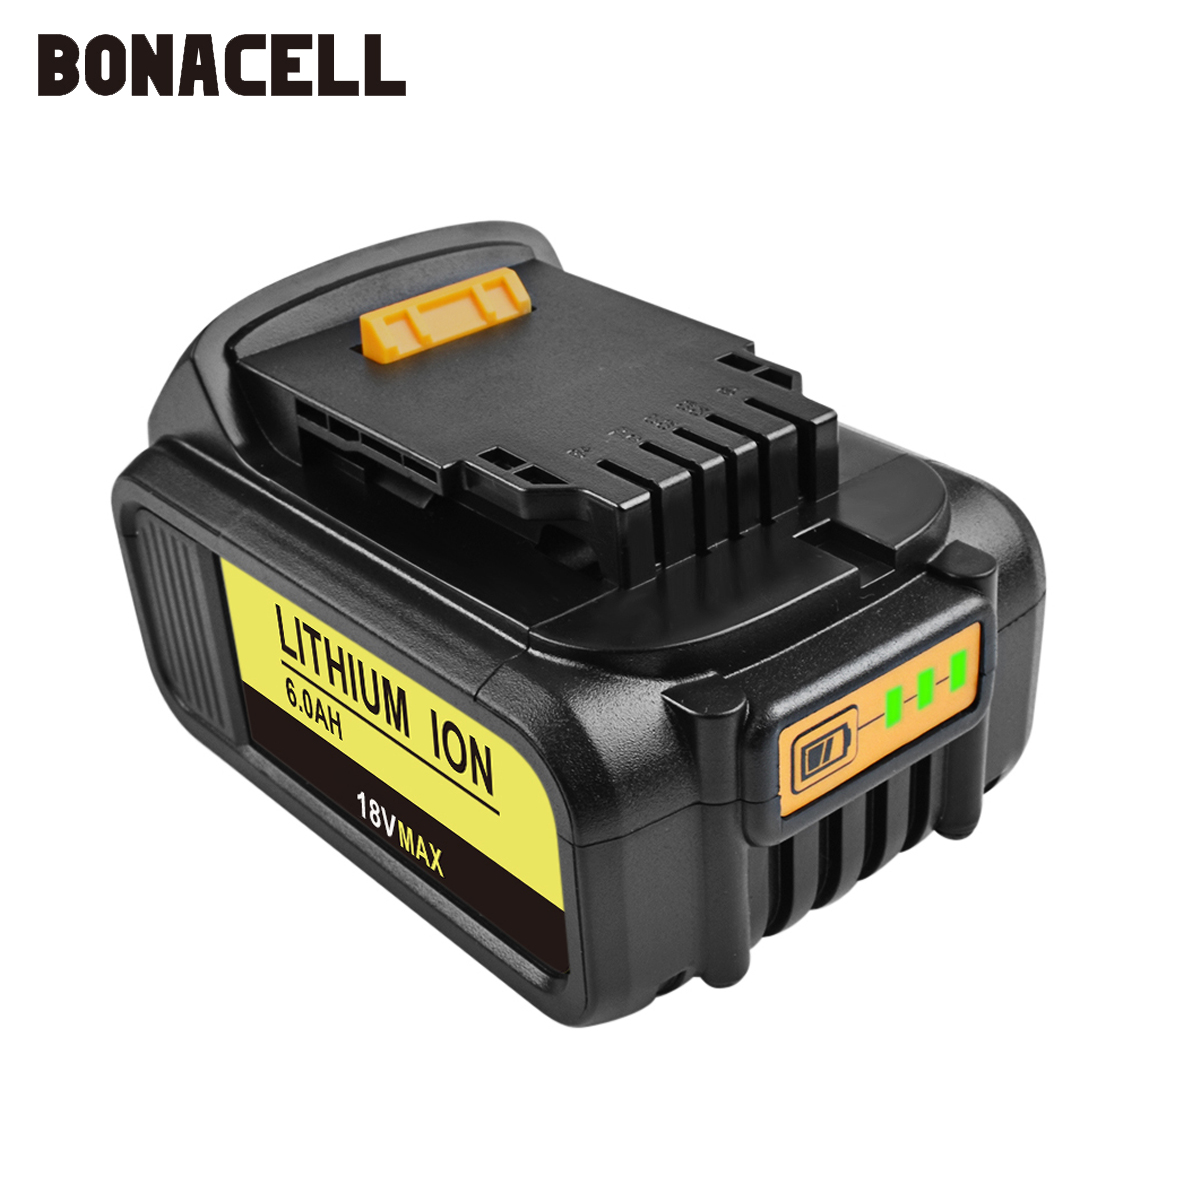 Image 4 - Bonacell 6000mAh 18V for Dewalt Power Tool Battery for DCB180 DCB181 DCB182 DCB201 DCB201 2 DCB200 DCB200 2 DCB204 2 L10-in Replacement Batteries from Consumer Electronics